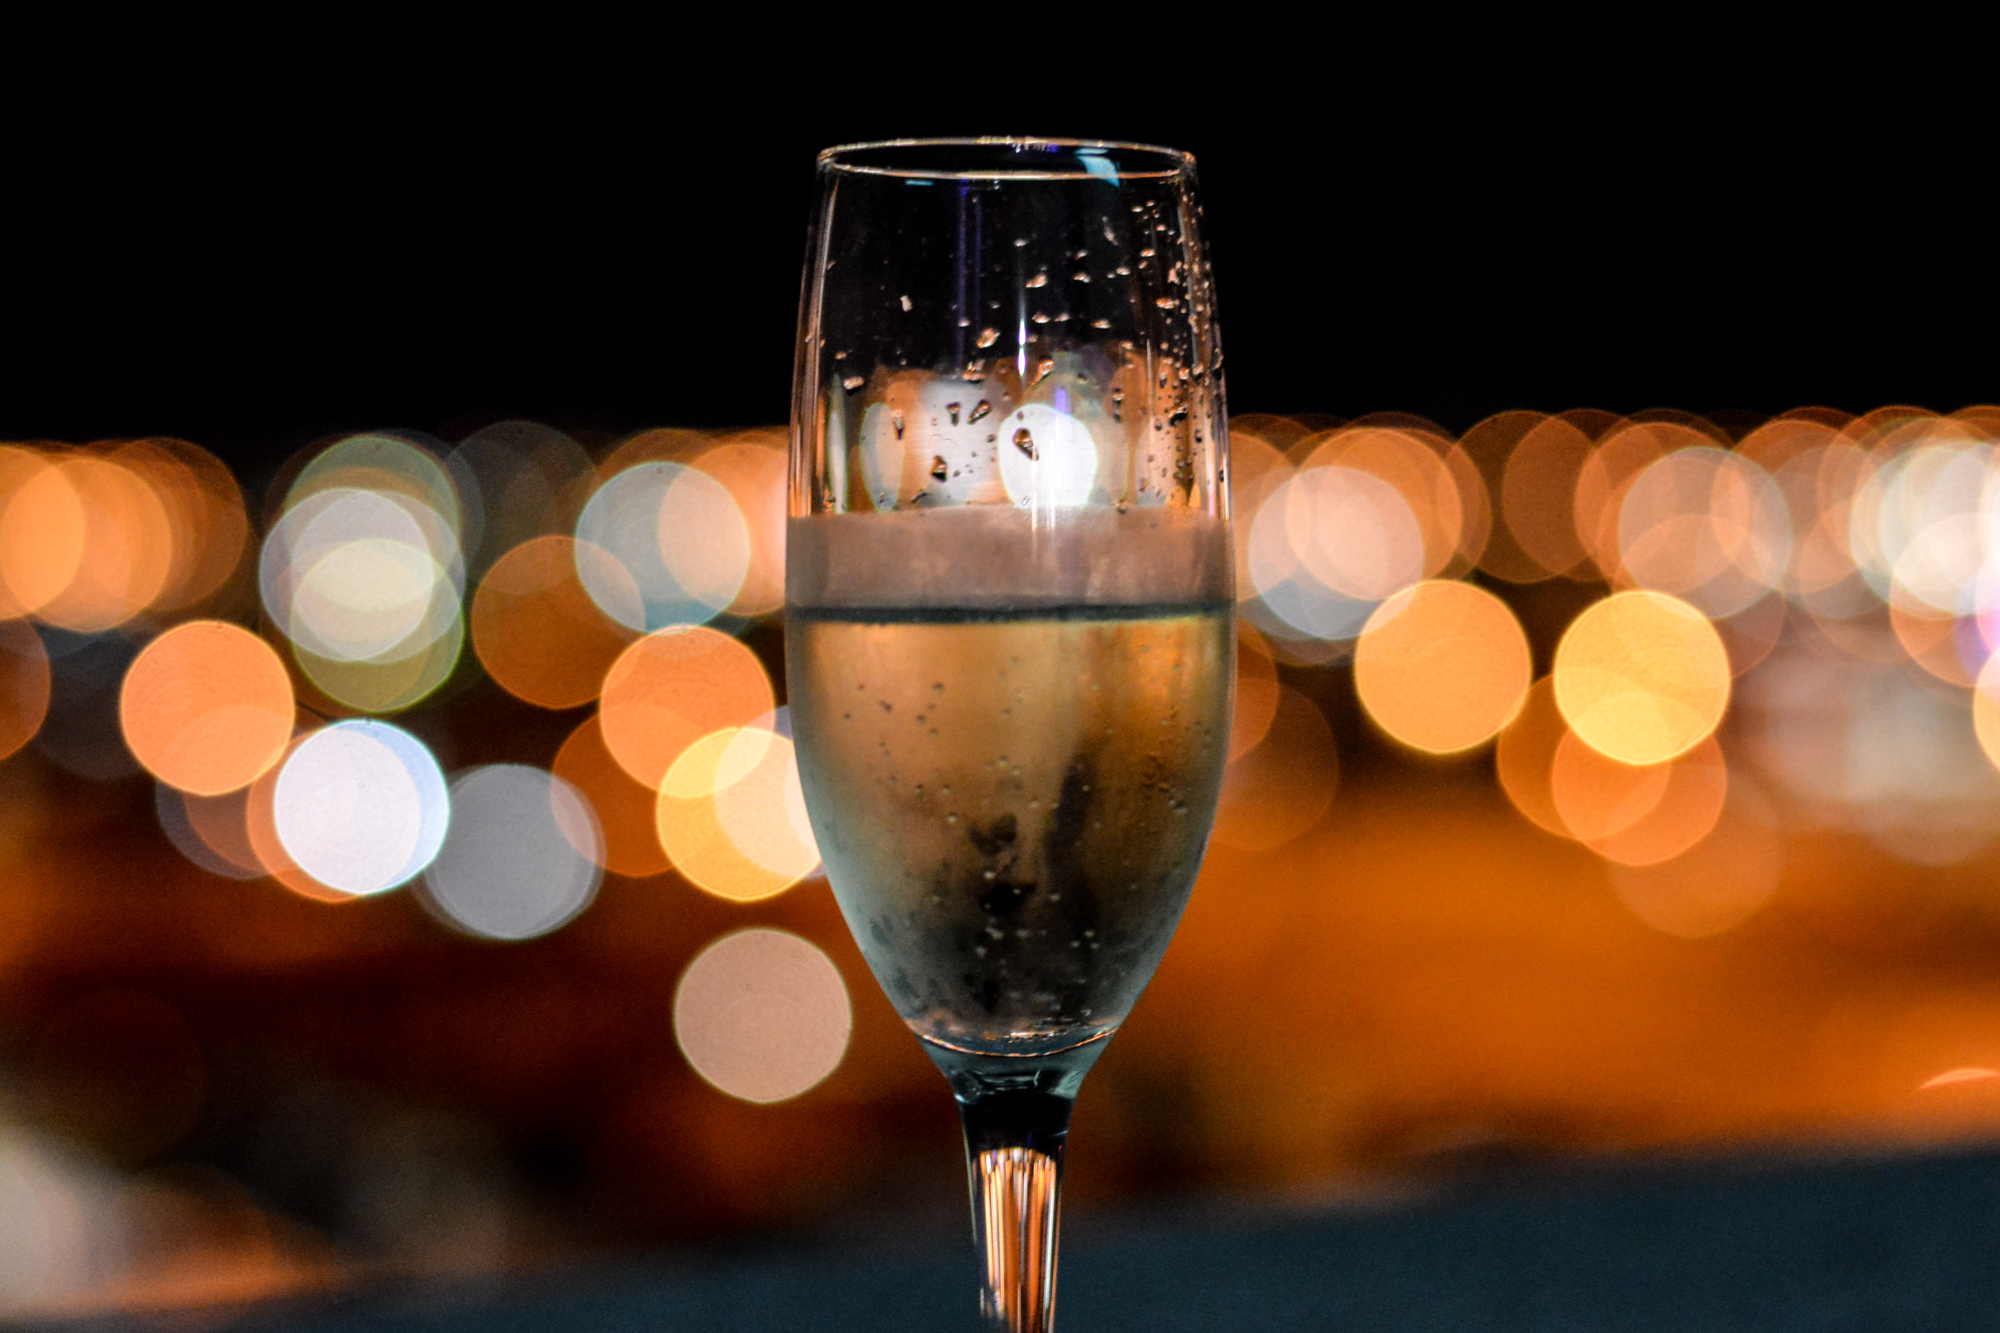 São Francisco River Valley Sparkling Wine is a hit at weddings, graduation parties.